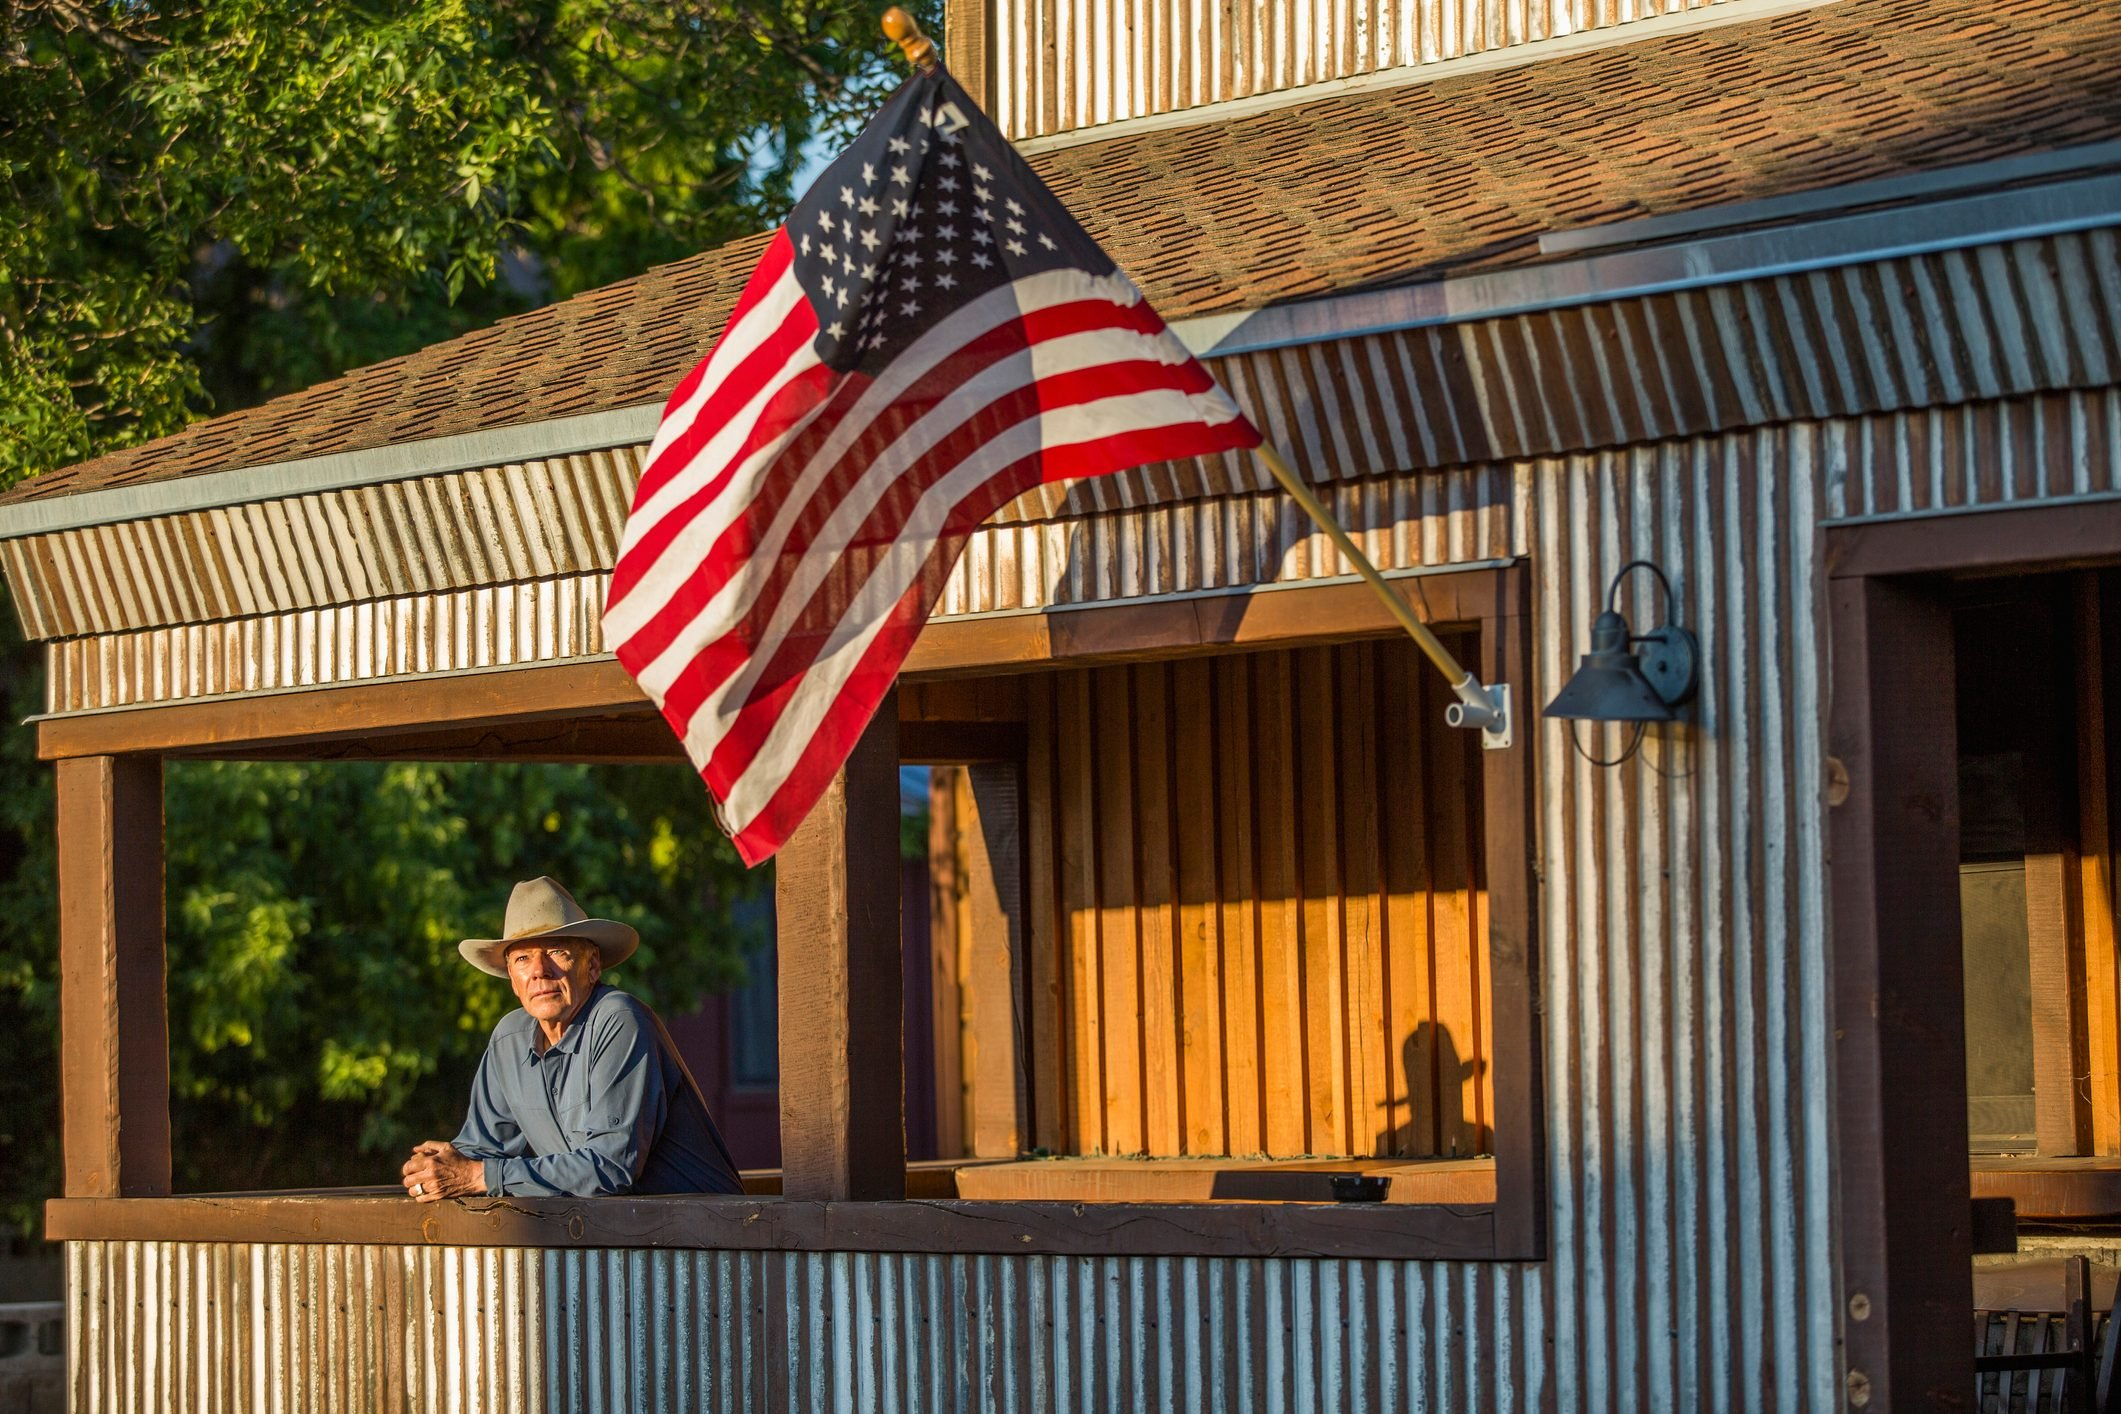 Serious farmer on his porch with an American flag in low, golden sunlight